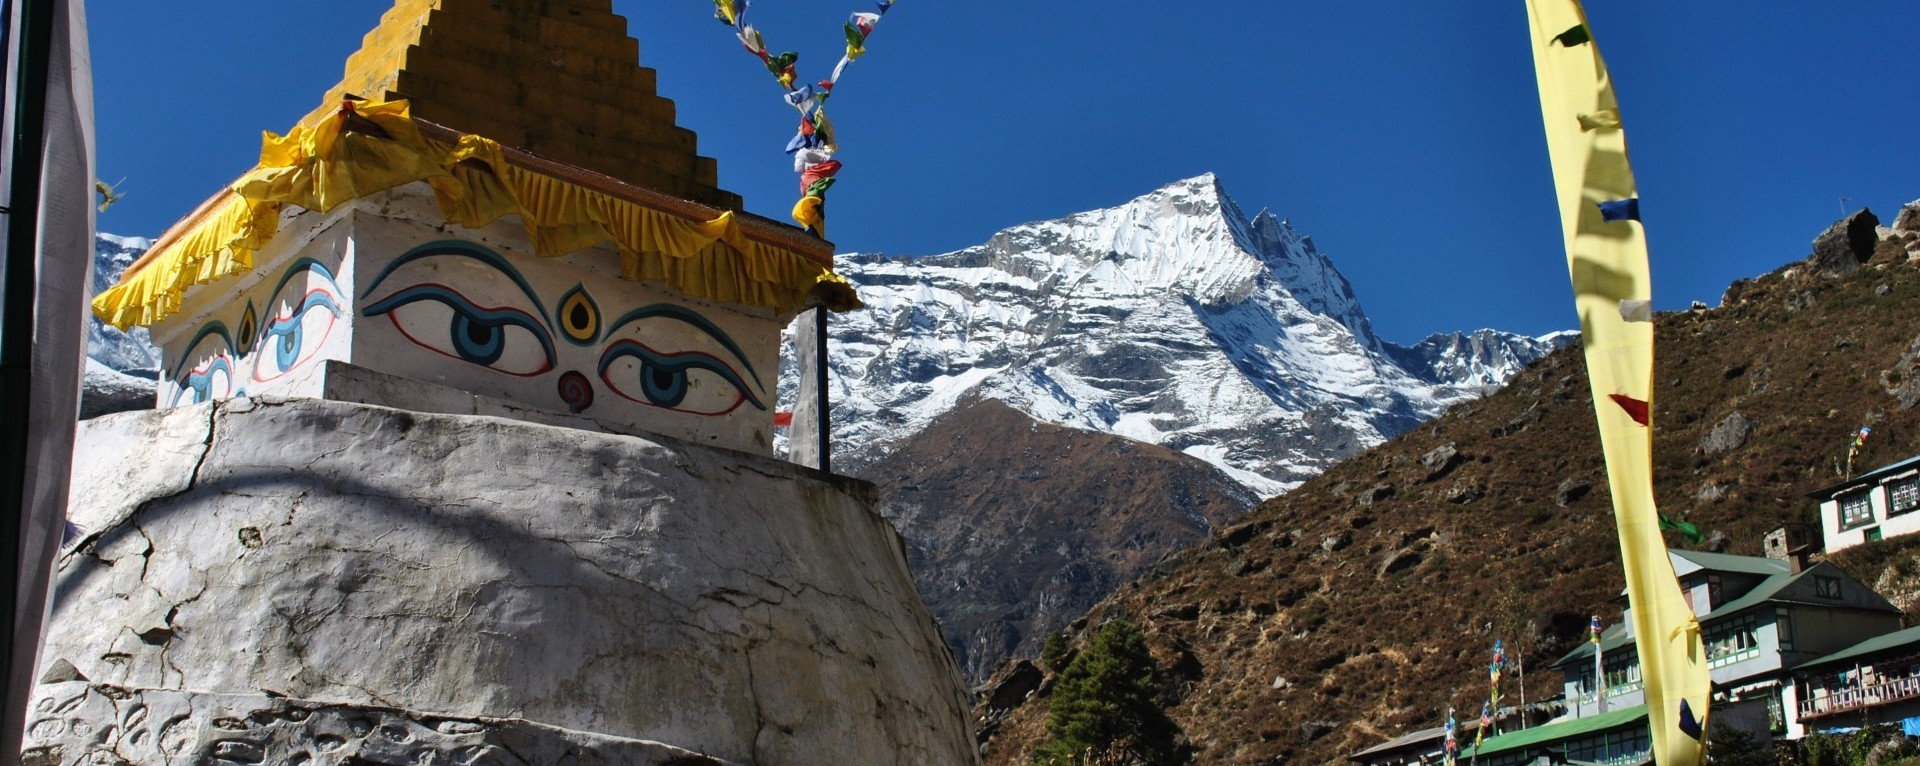 Khumbu trekking, khumbu valley trekking, monastry in everest